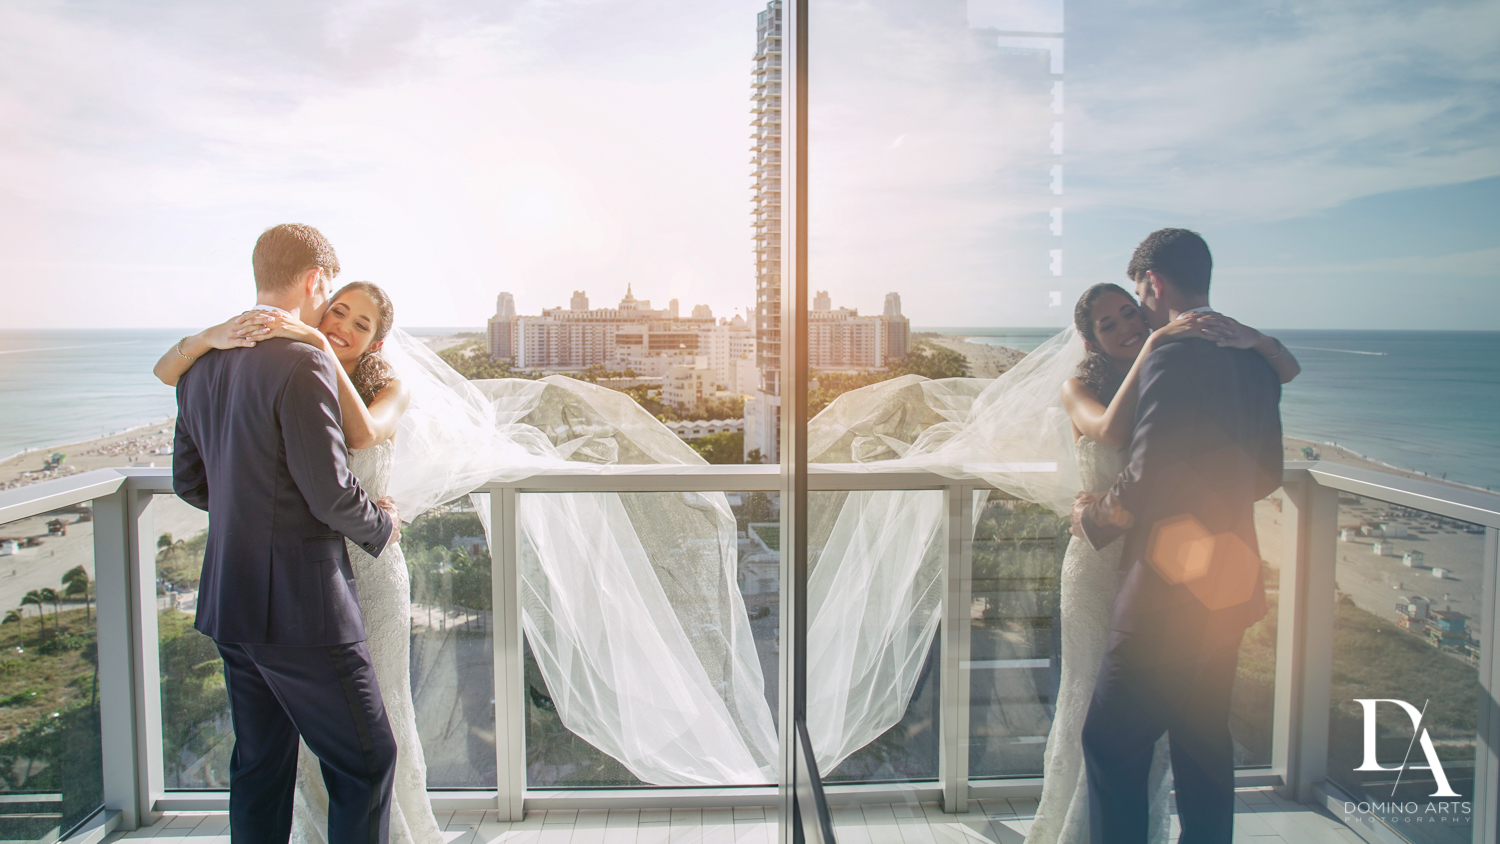 Romantic portraits miami beach wedding